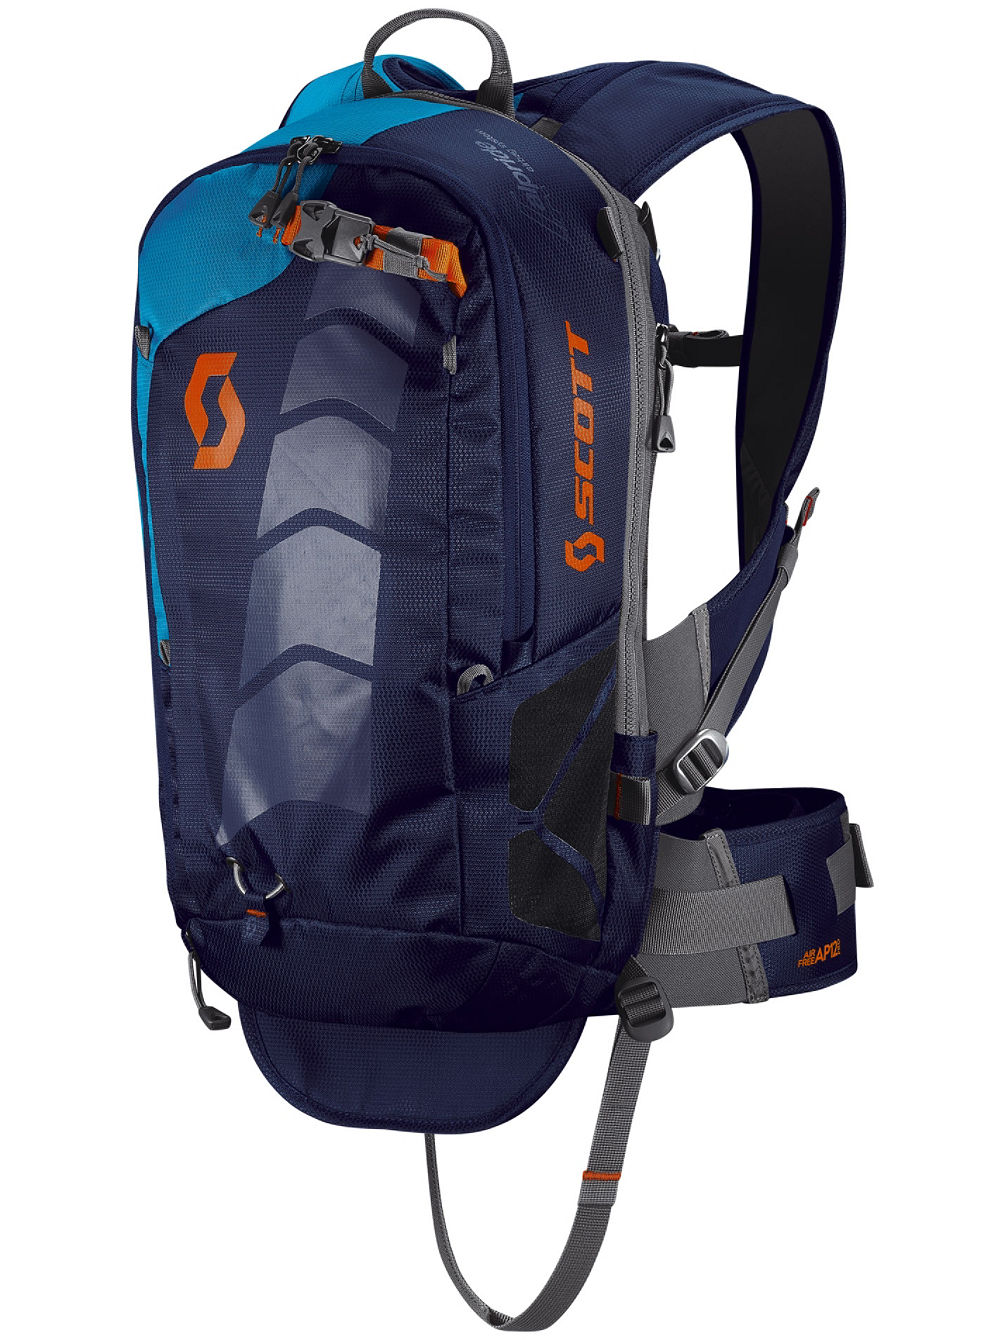 Air Free Ap 12 Pro Backpack